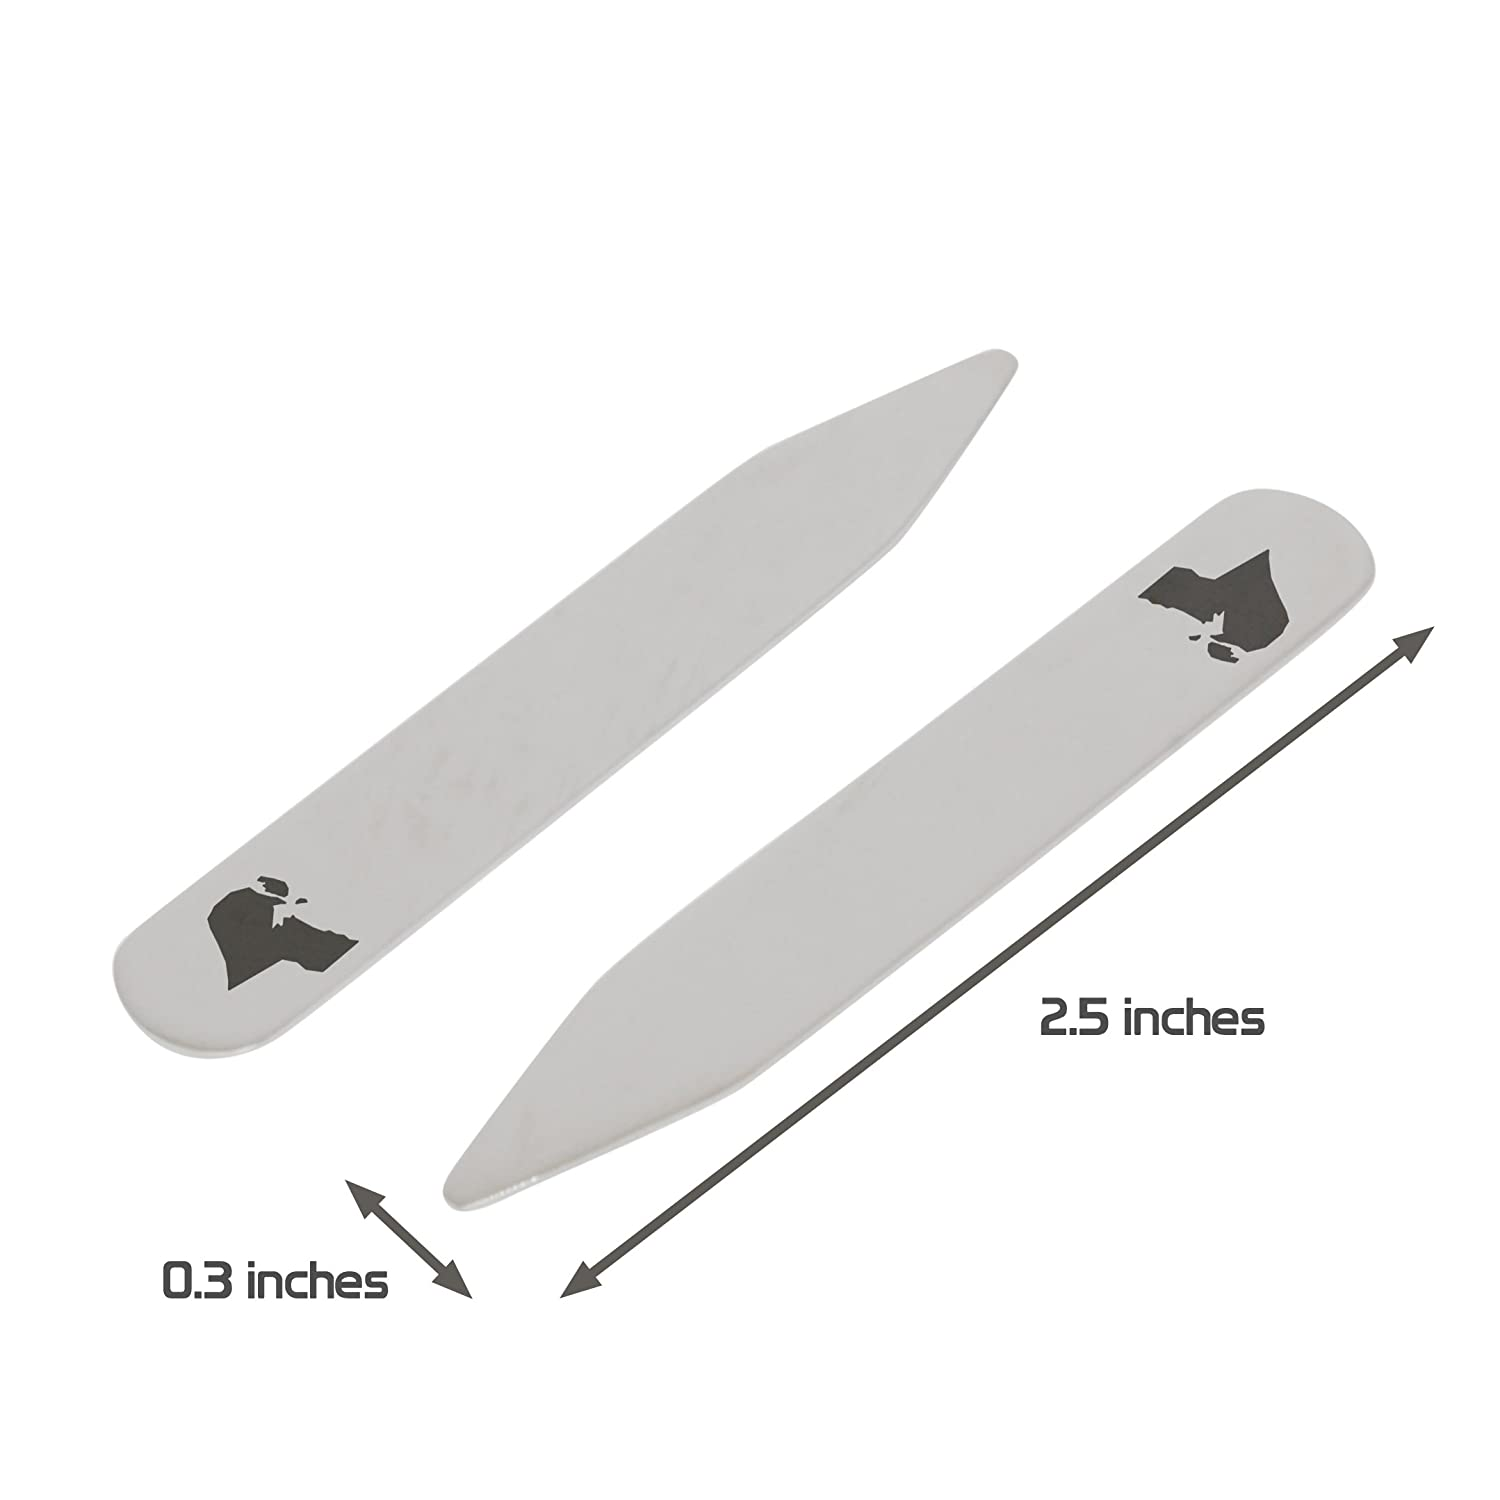 Made In USA 2.5 Inch Metal Collar Stiffeners MODERN GOODS SHOP Stainless Steel Collar Stays With Laser Engraved Kuwait Design